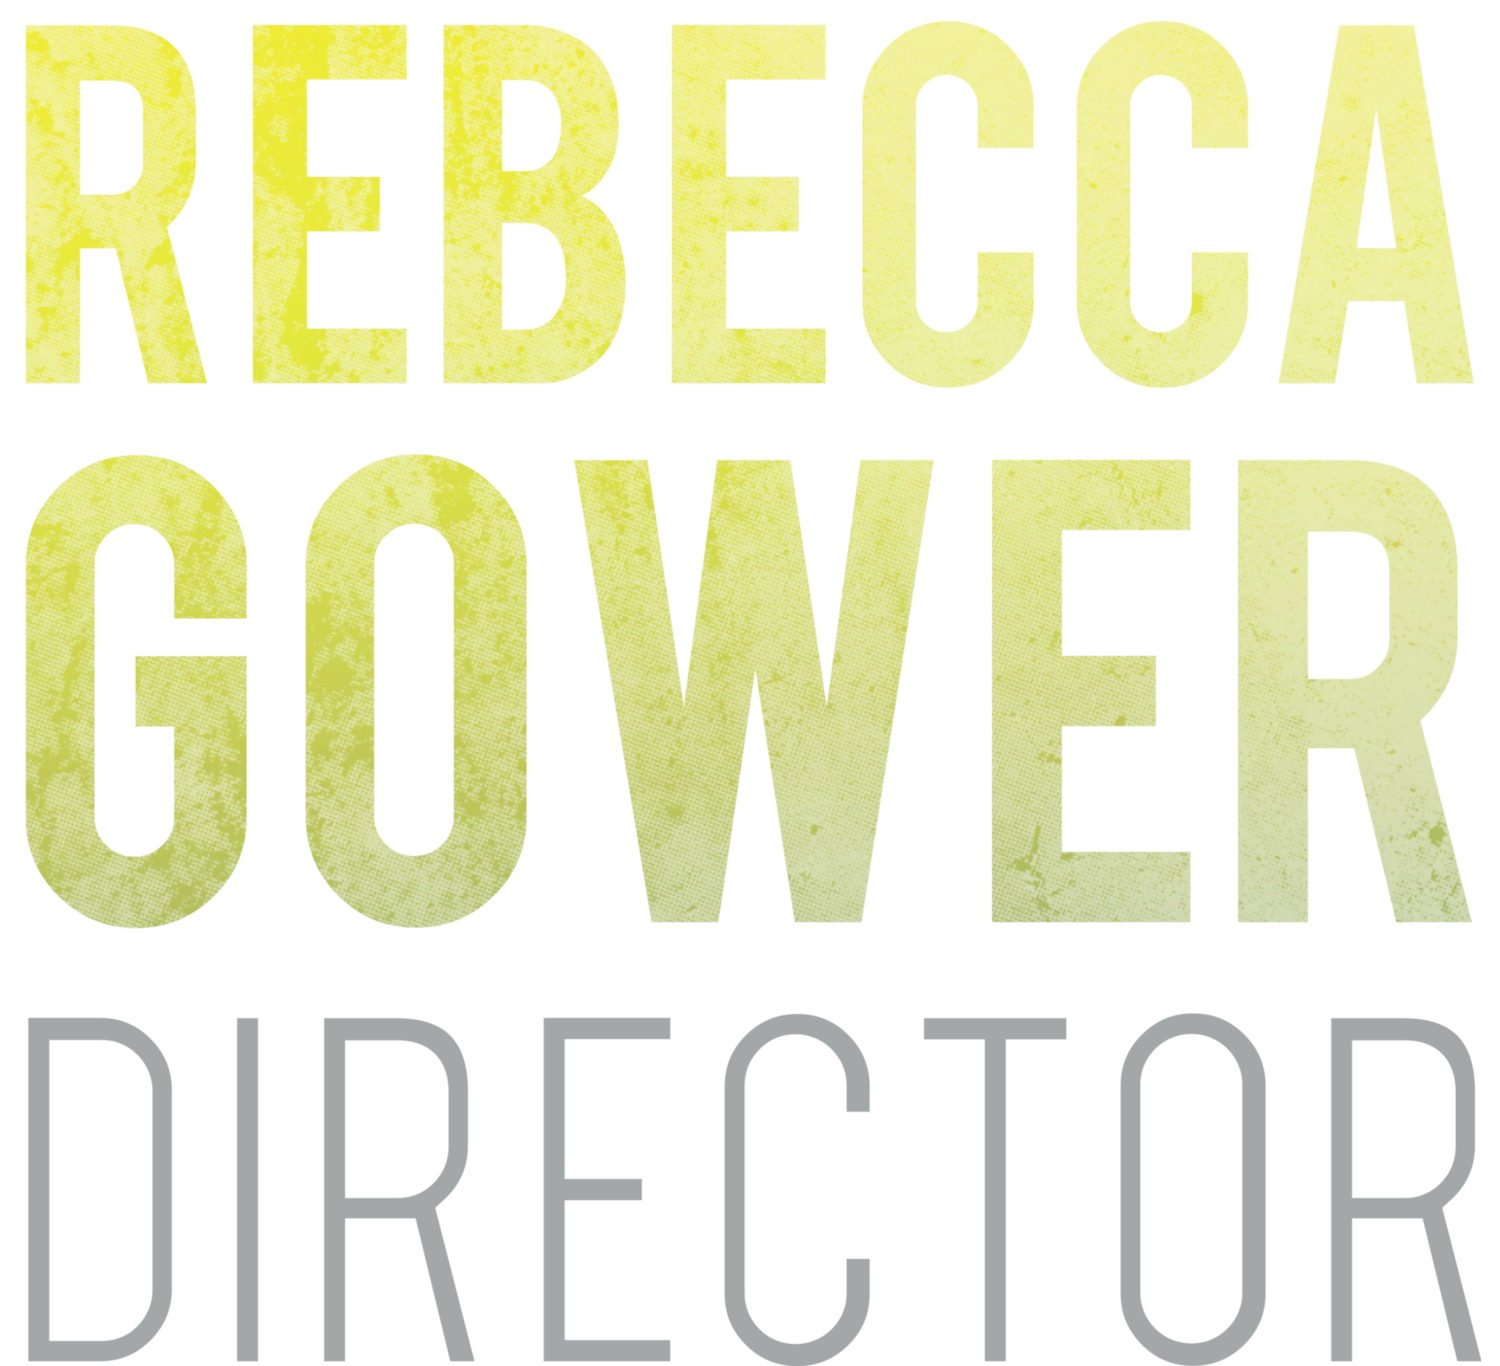 Rebecca the Director